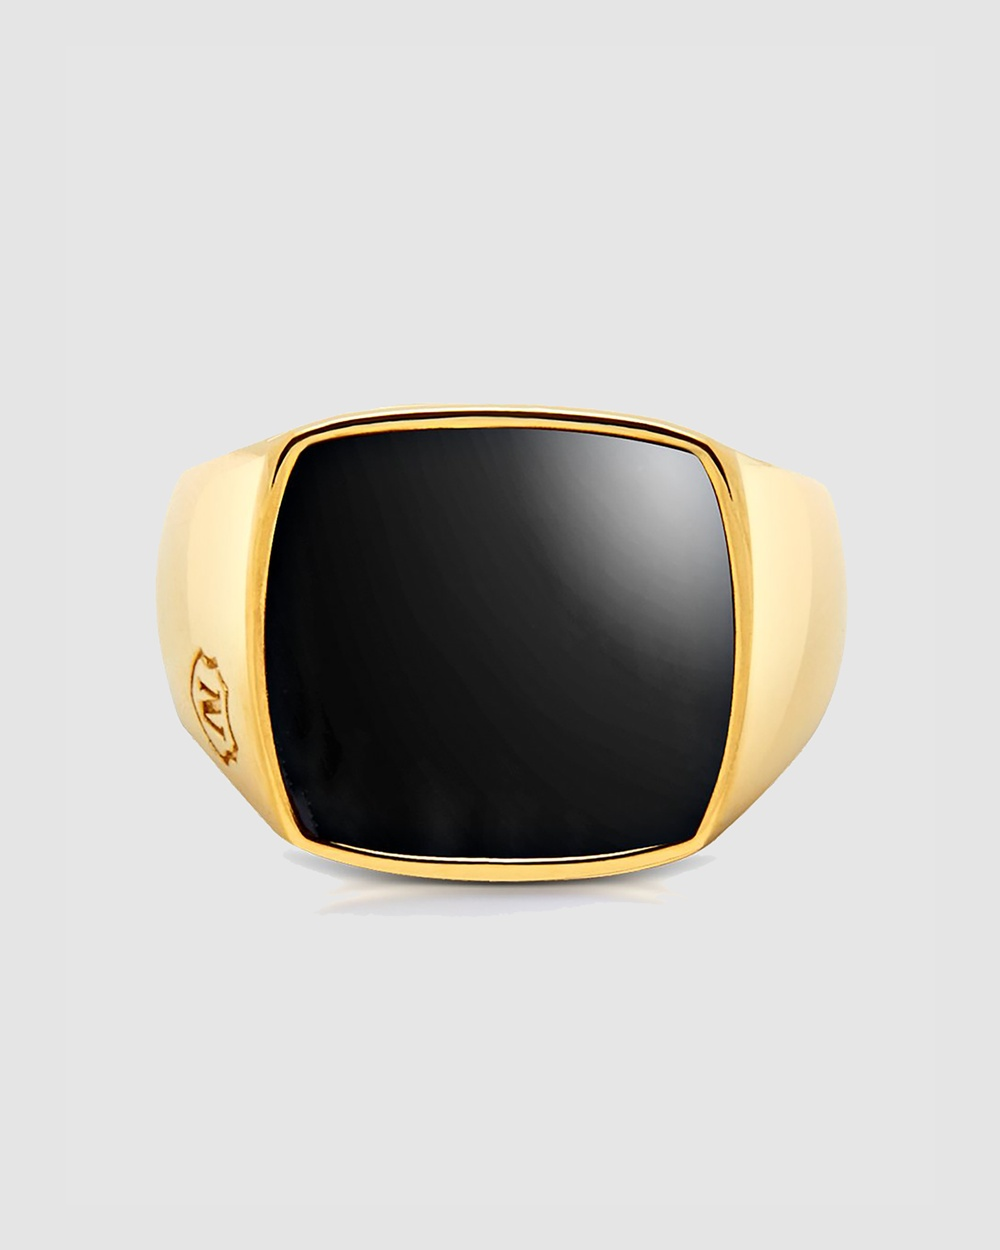 Nialaya Jewellery Men's Cocktail Ring with Onyx Gold